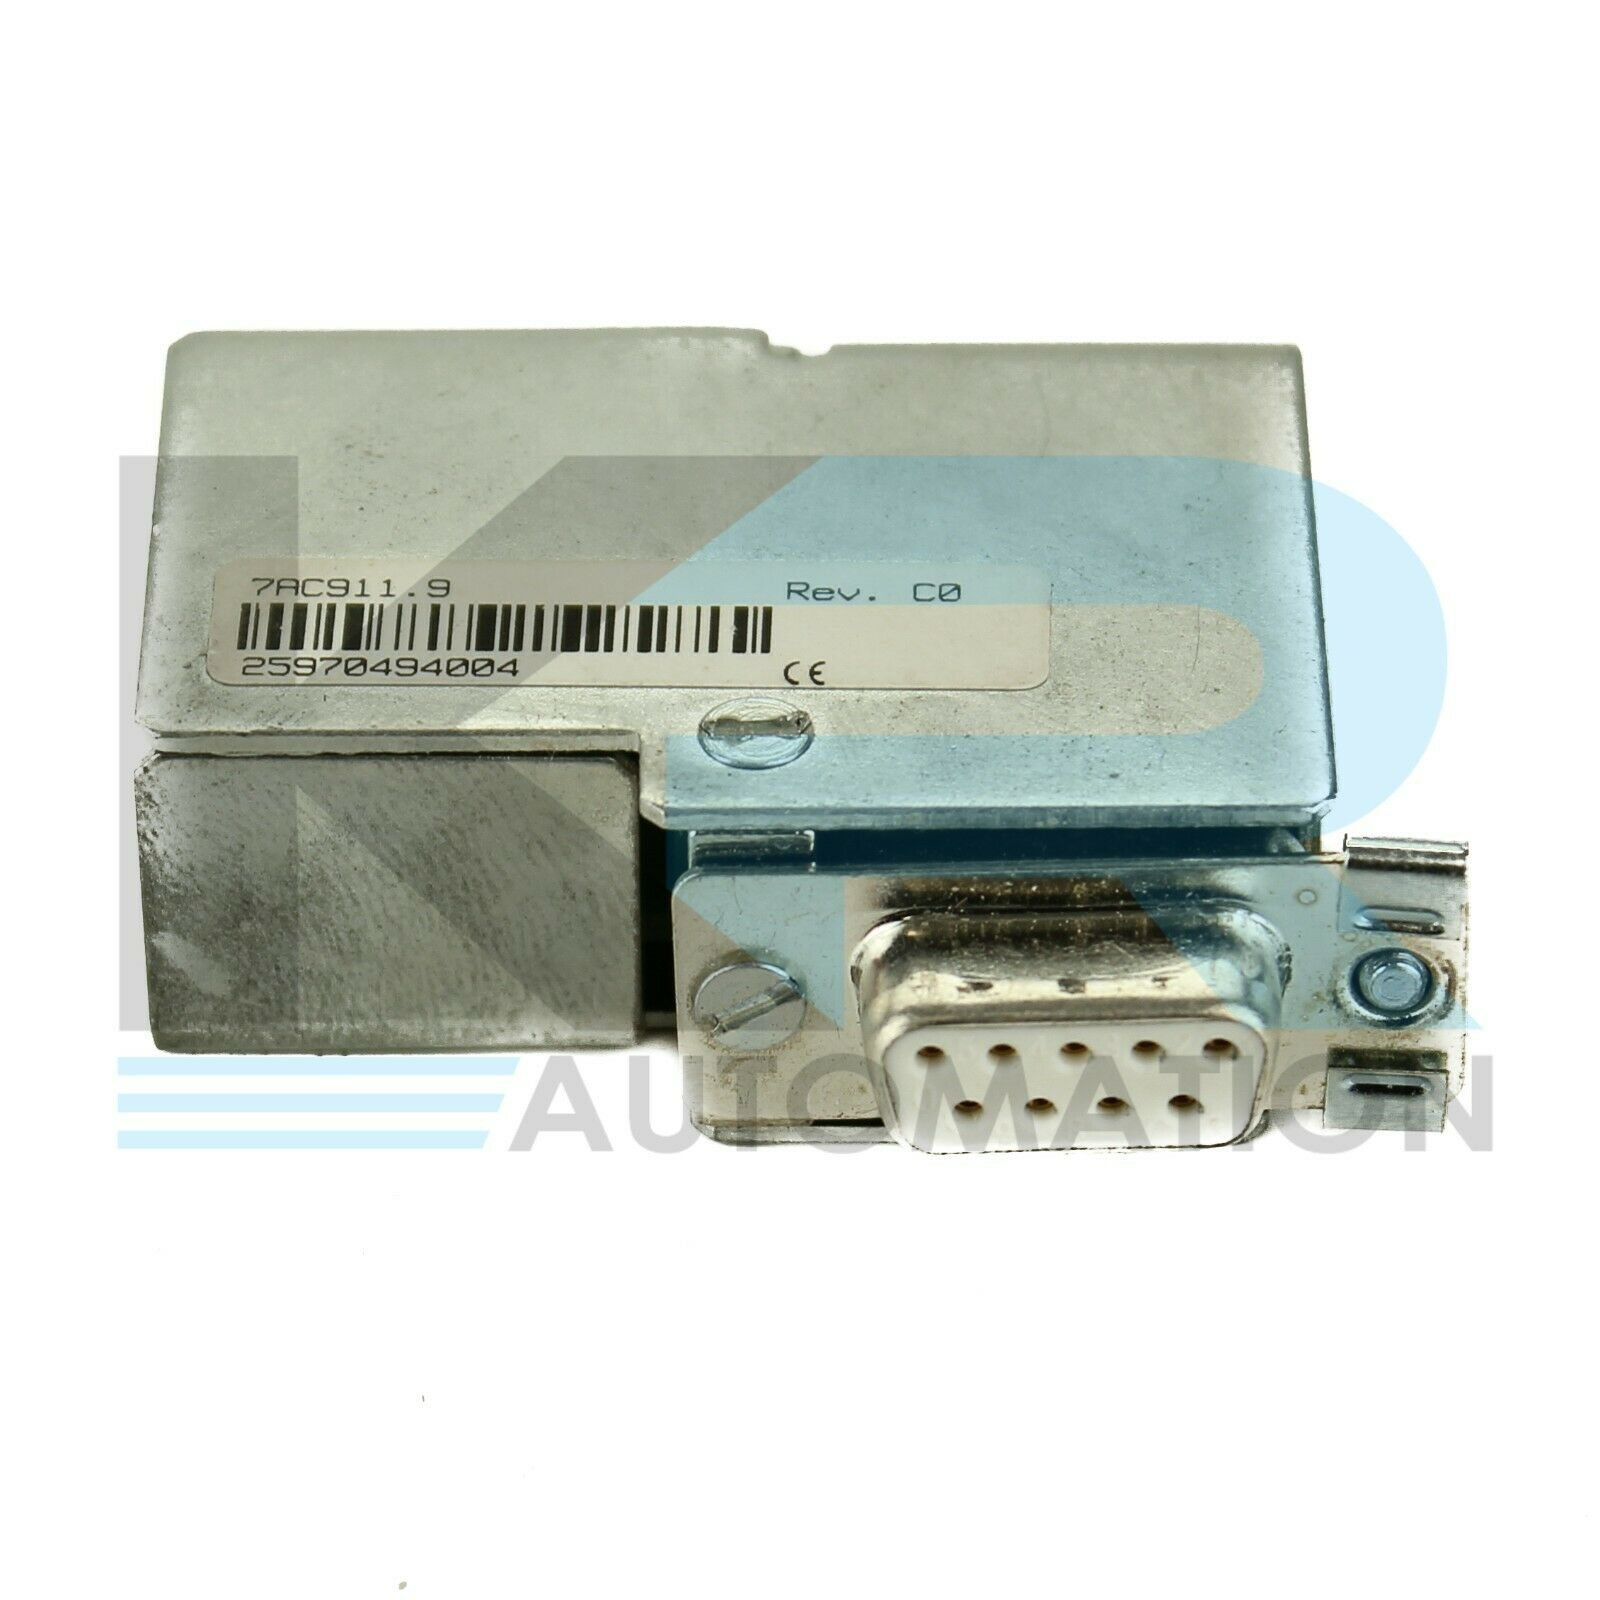 B&R Automation 7AC911.9 Connector Bus Controller to CAN Network